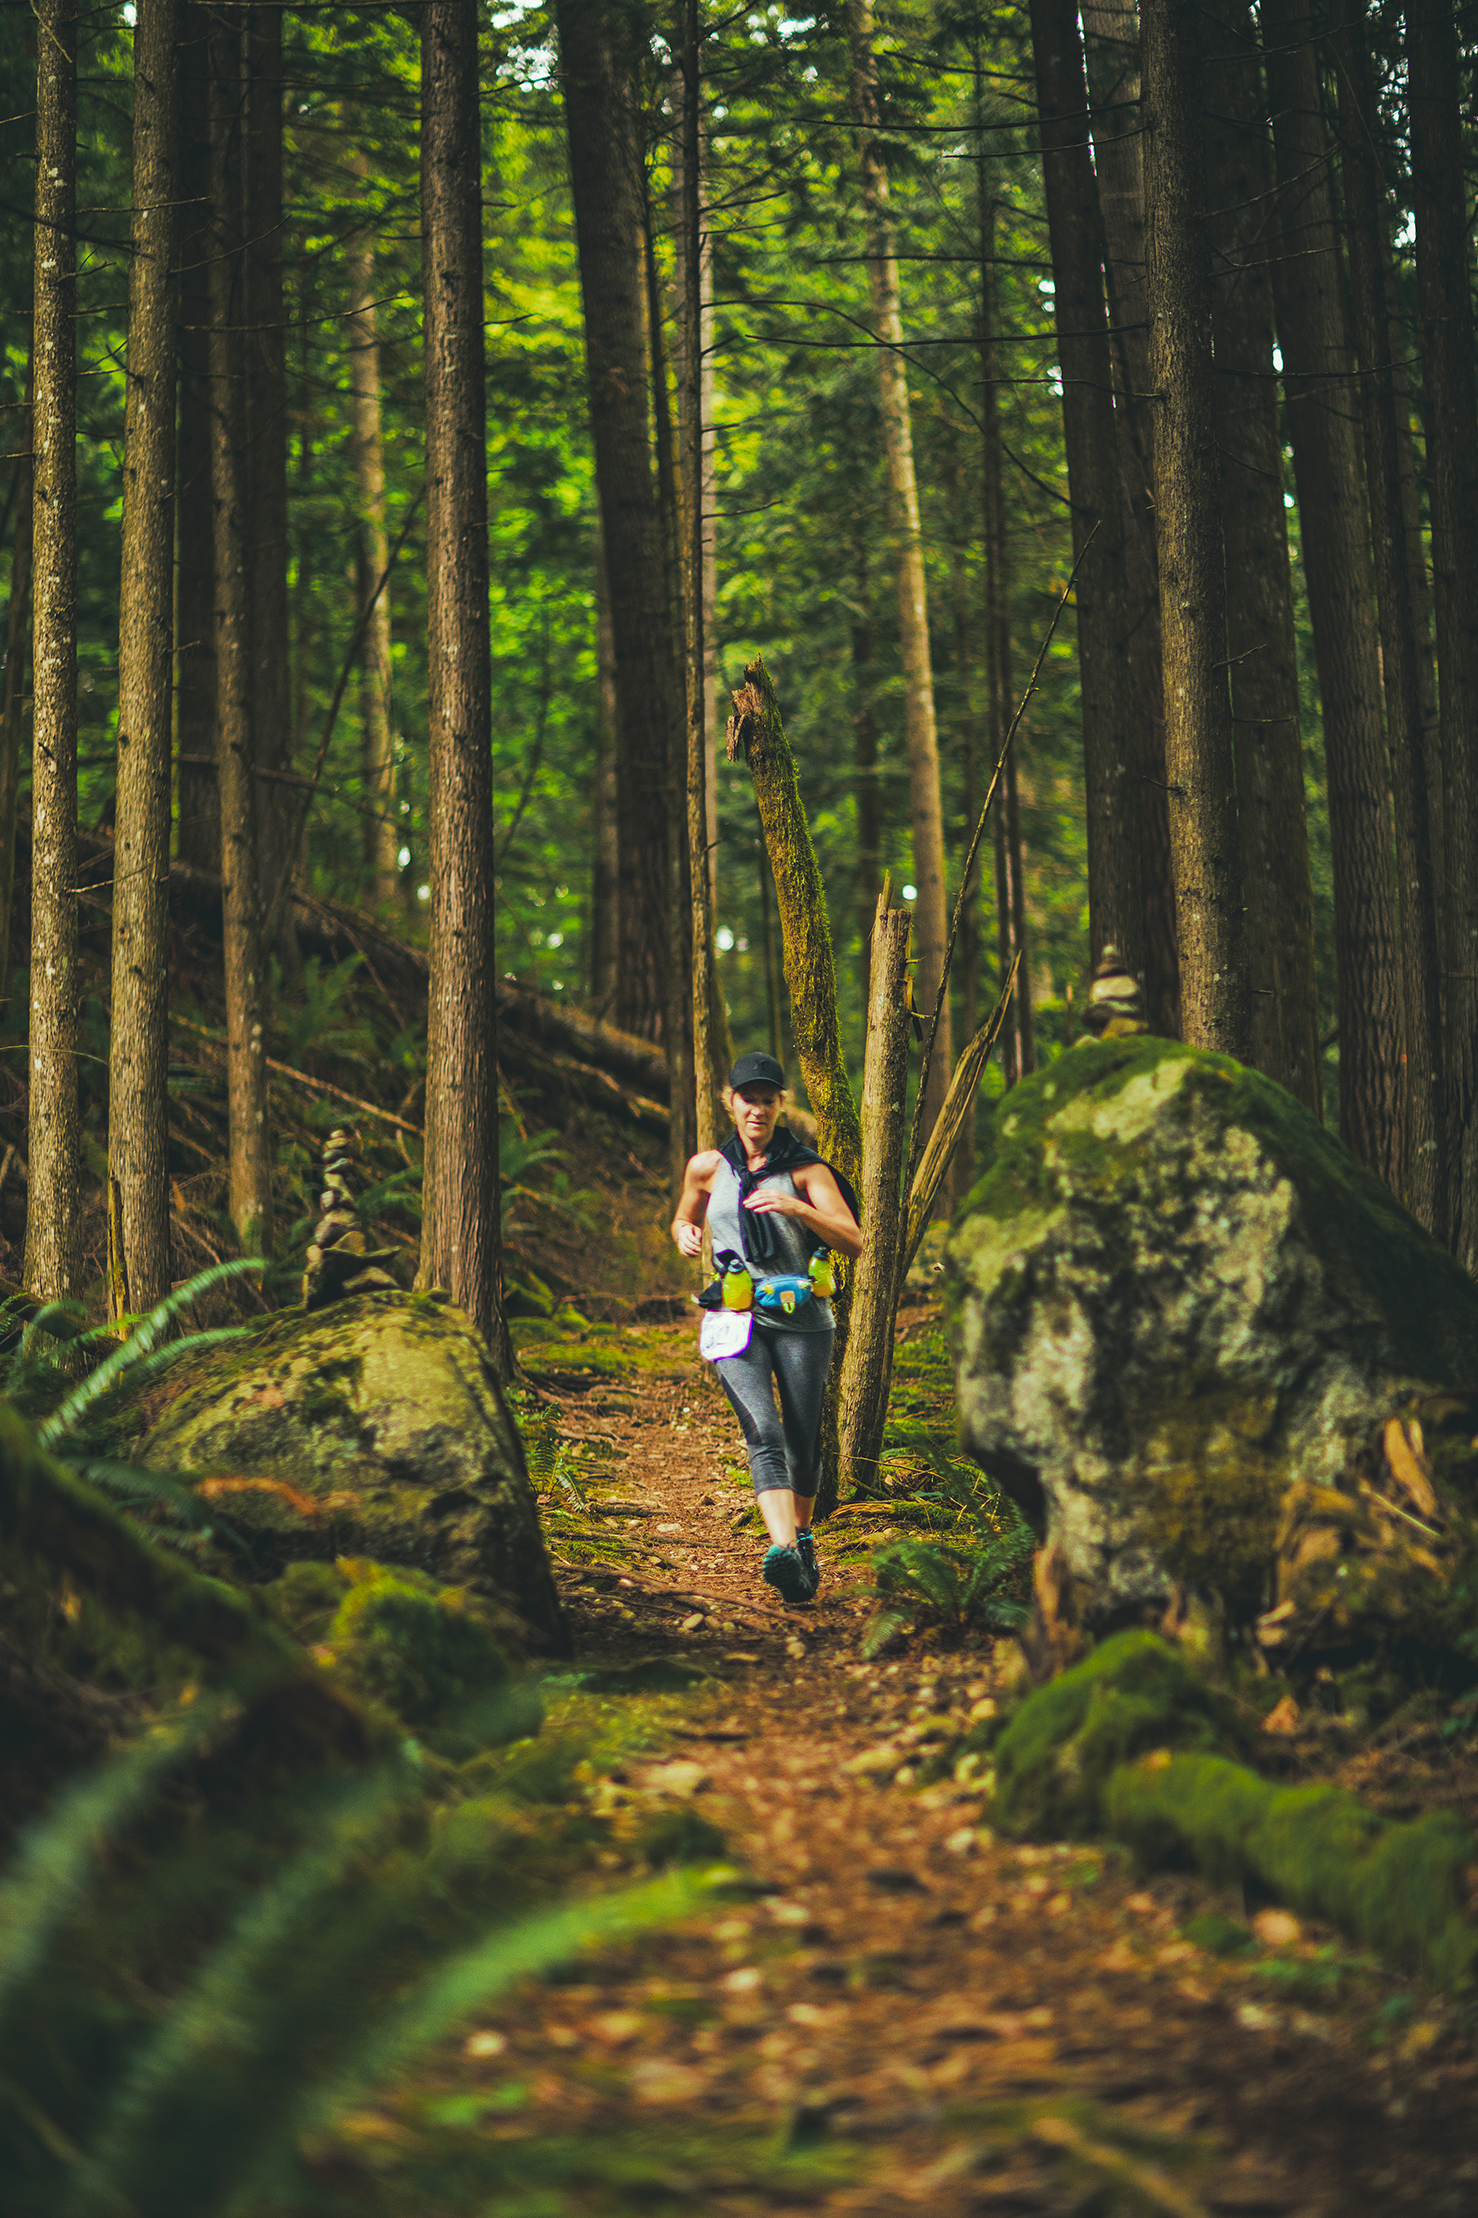 Fraser Valley Trail Races - Bear Mountain - IMG_2252 by Brice Ferre Studio - Vancouver Portrait Adventure and Athlete Photographer.jpg